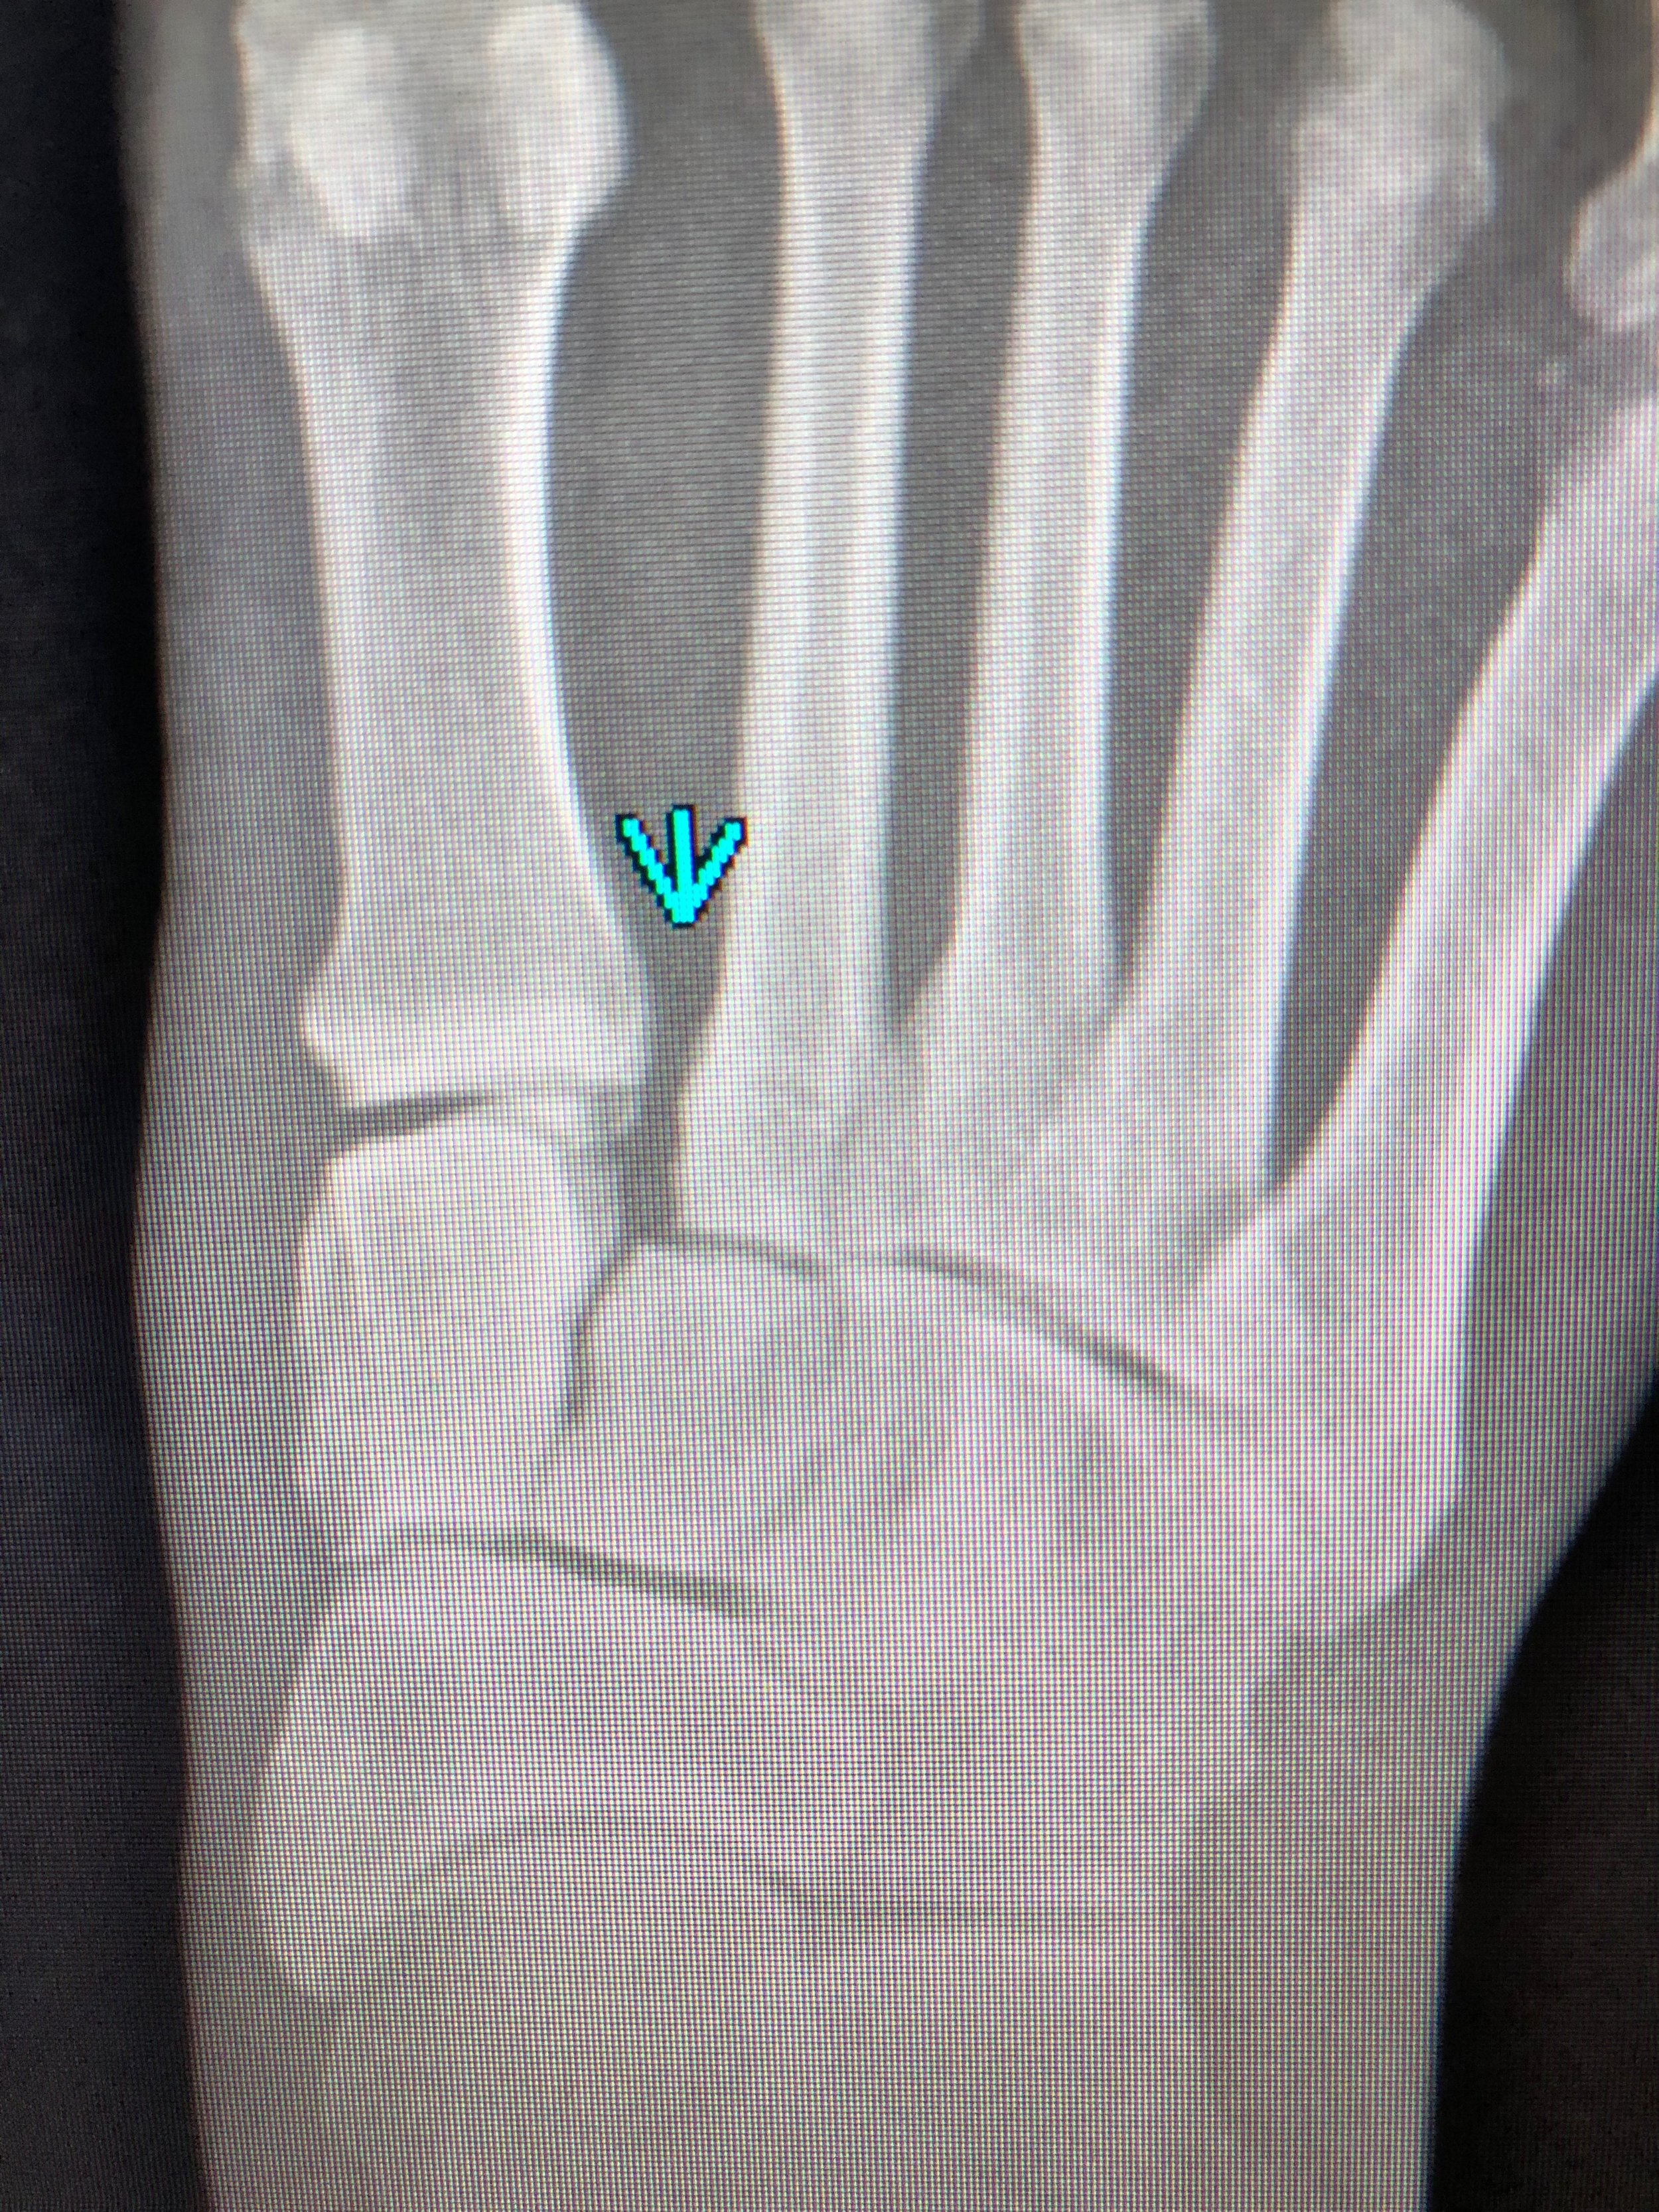 The weighted x-ray. The blue arrow indicates the Lisfranc joint and shows greater separation while weighted.